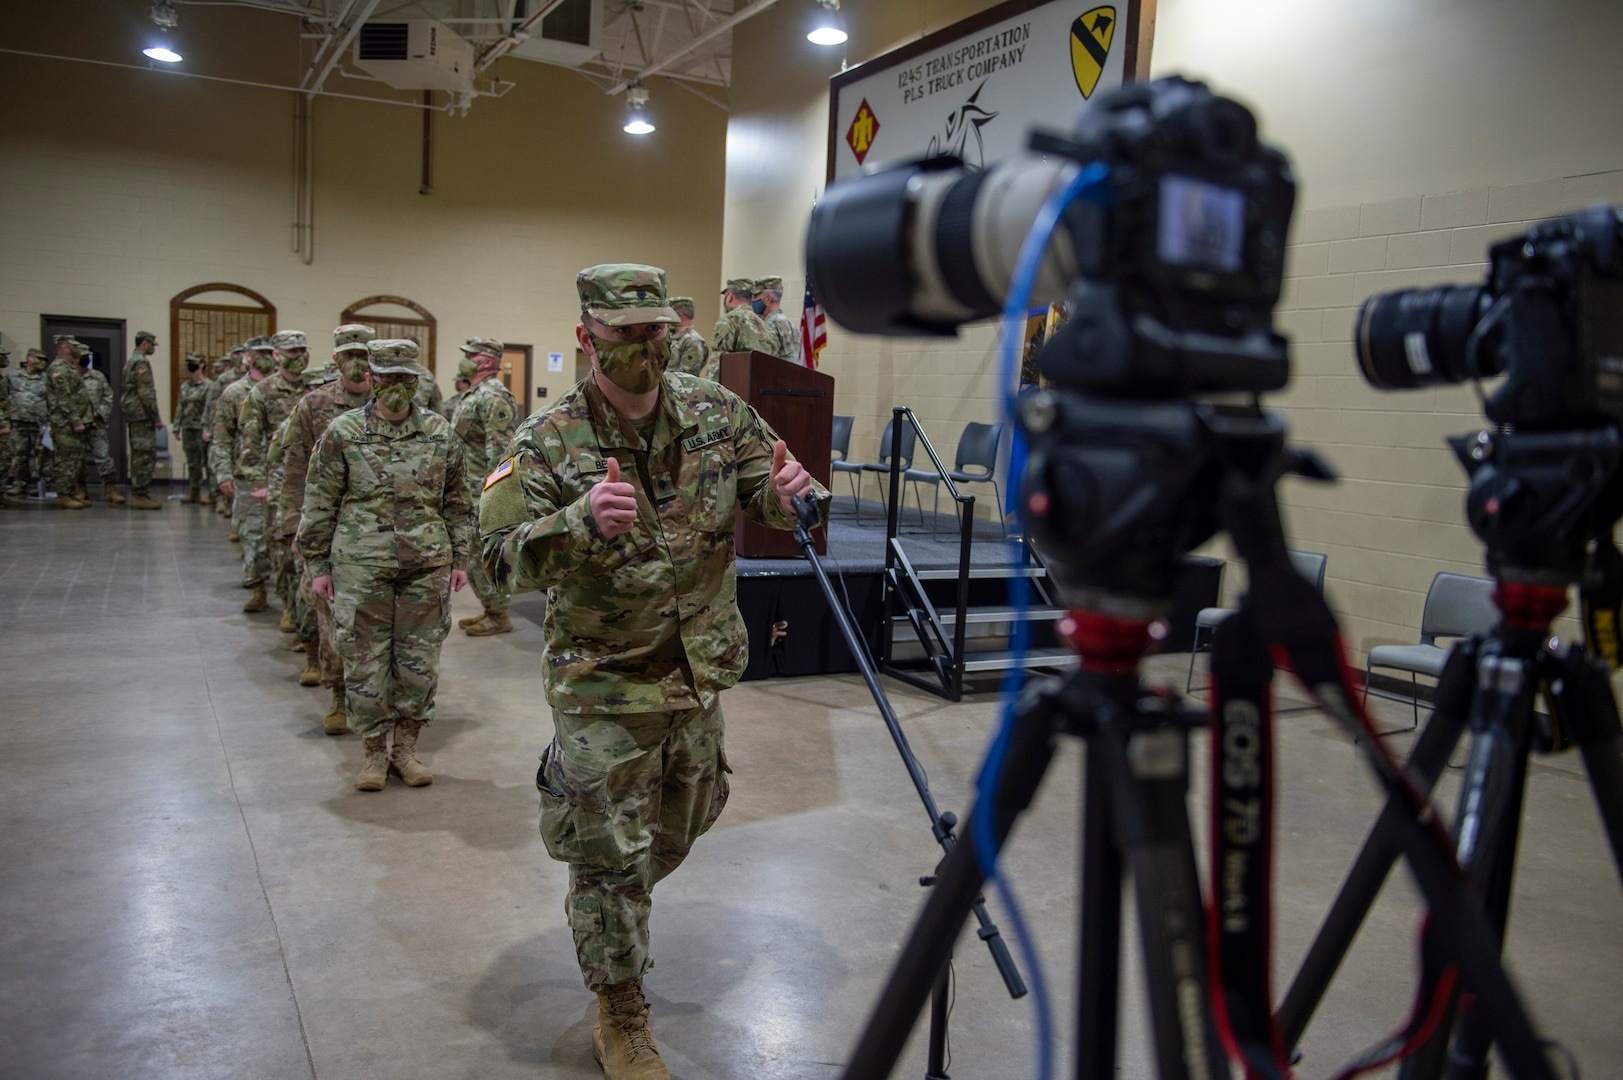 """A Soldier with the 345th Combat Sustainment Support Battalion gives a """"thumbs up"""" gesture to cameras broadcasting a virtual send-off ceremony at the National Guard armory in Ada, Oklahoma, April 1, 2021. The Soldiers are being mobilized to Fort Bliss, Texas in order to provide COVID mitigation support to units deploying overseas. (Oklahoma National Guard photo by Leanna Maschino)"""